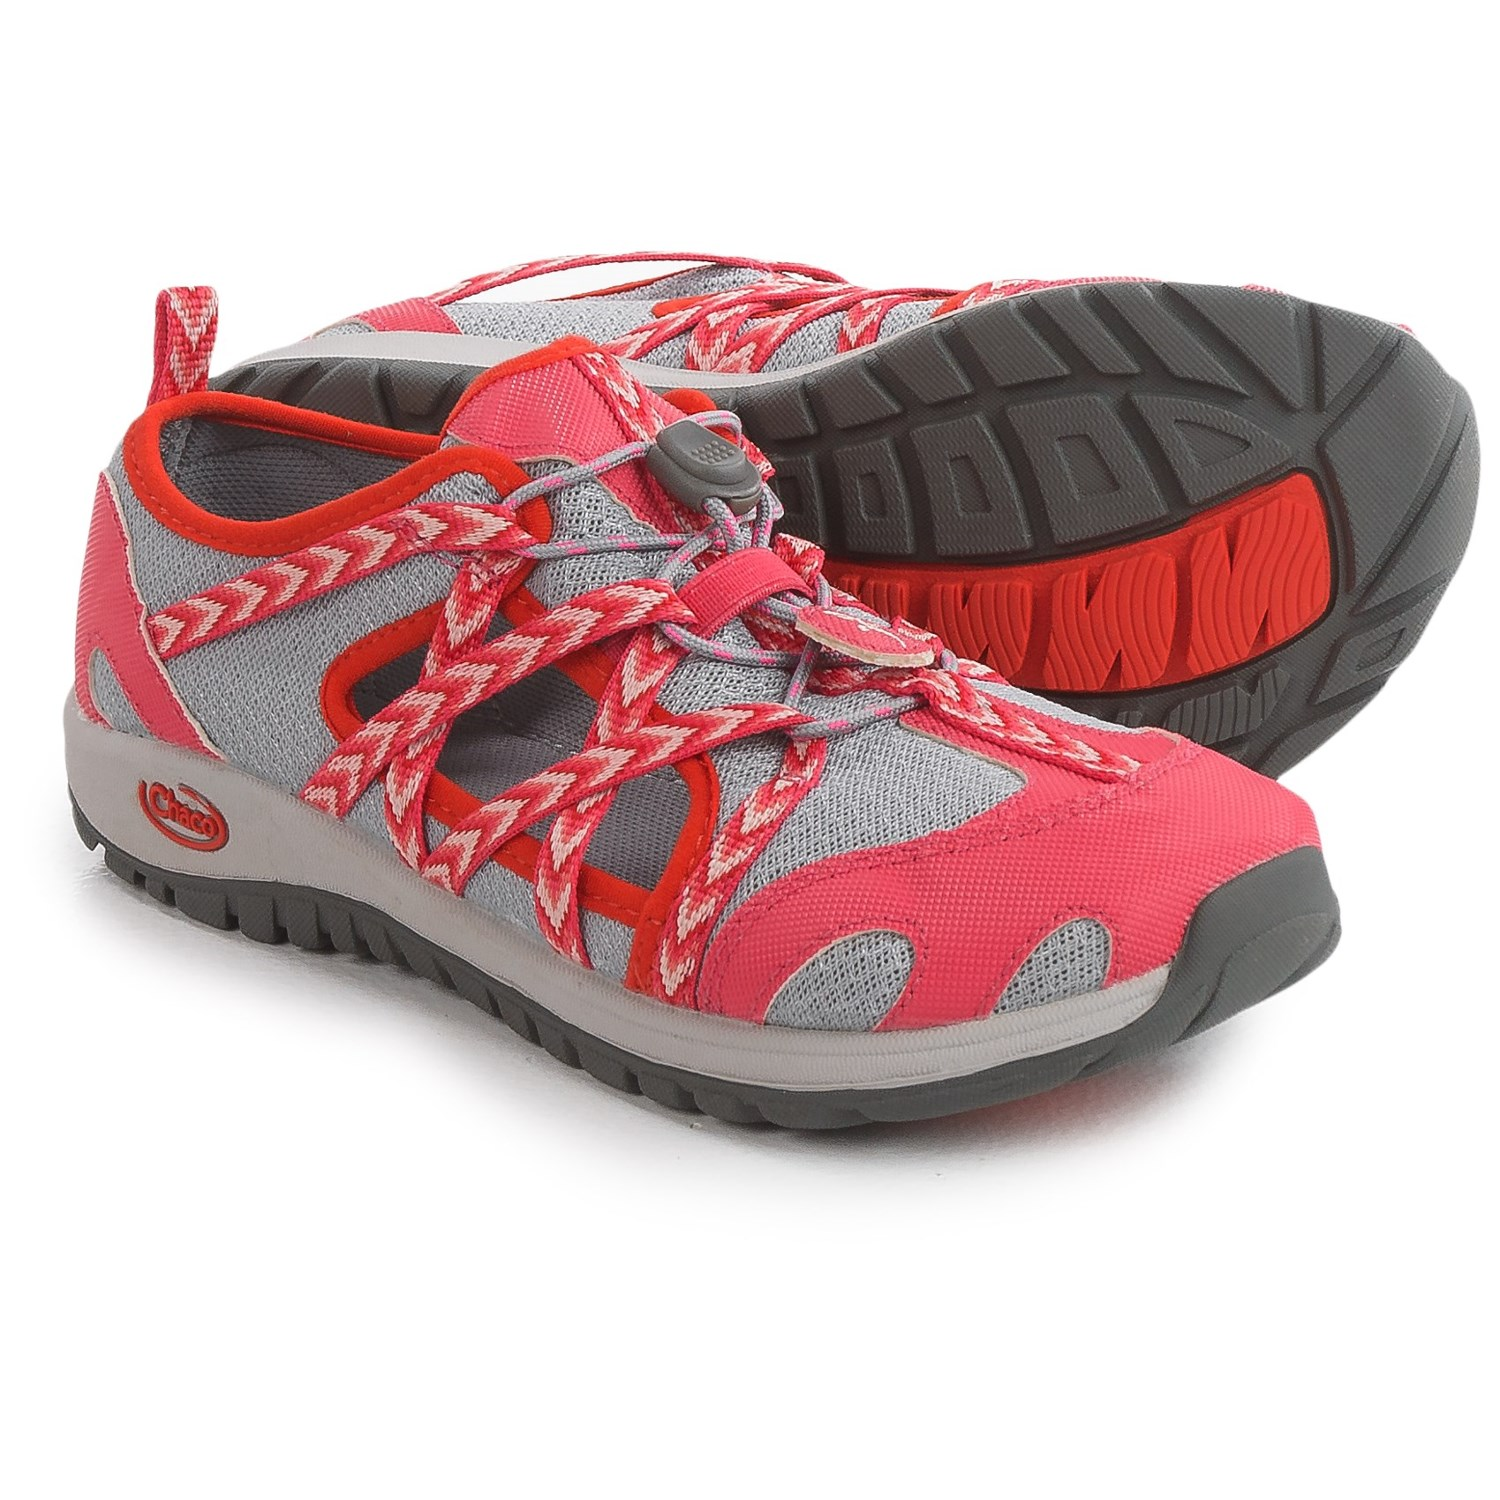 7543a68a3c5b8b Chaco OutCross Water Shoes (For Big Kids) in Fiesta Rose